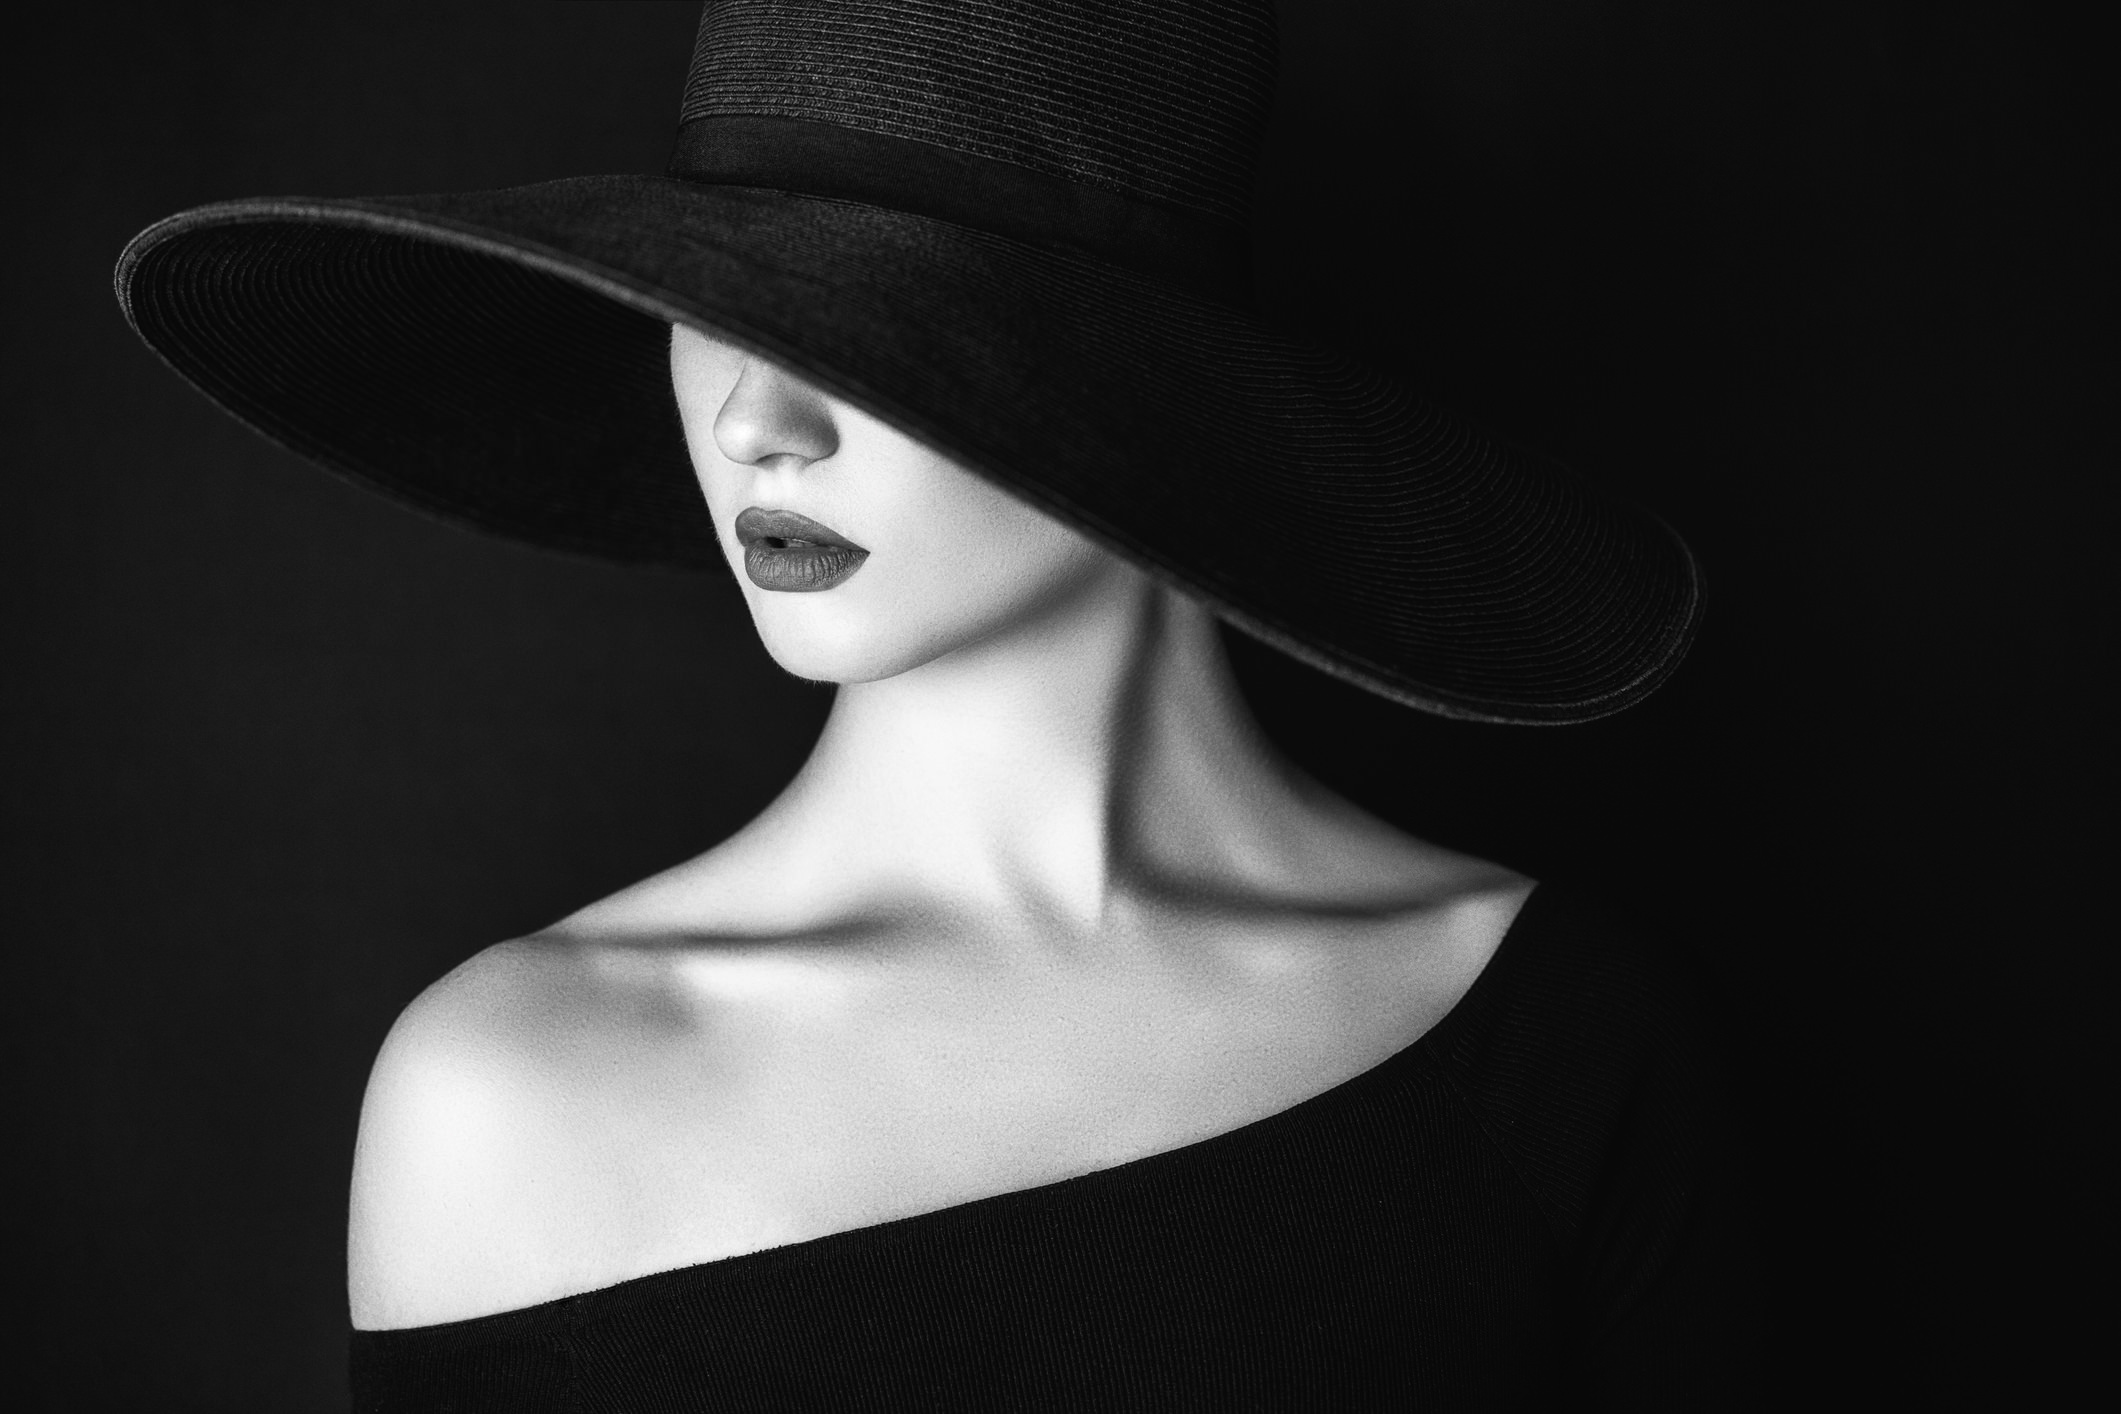 Fashion photography wallpaper black and white